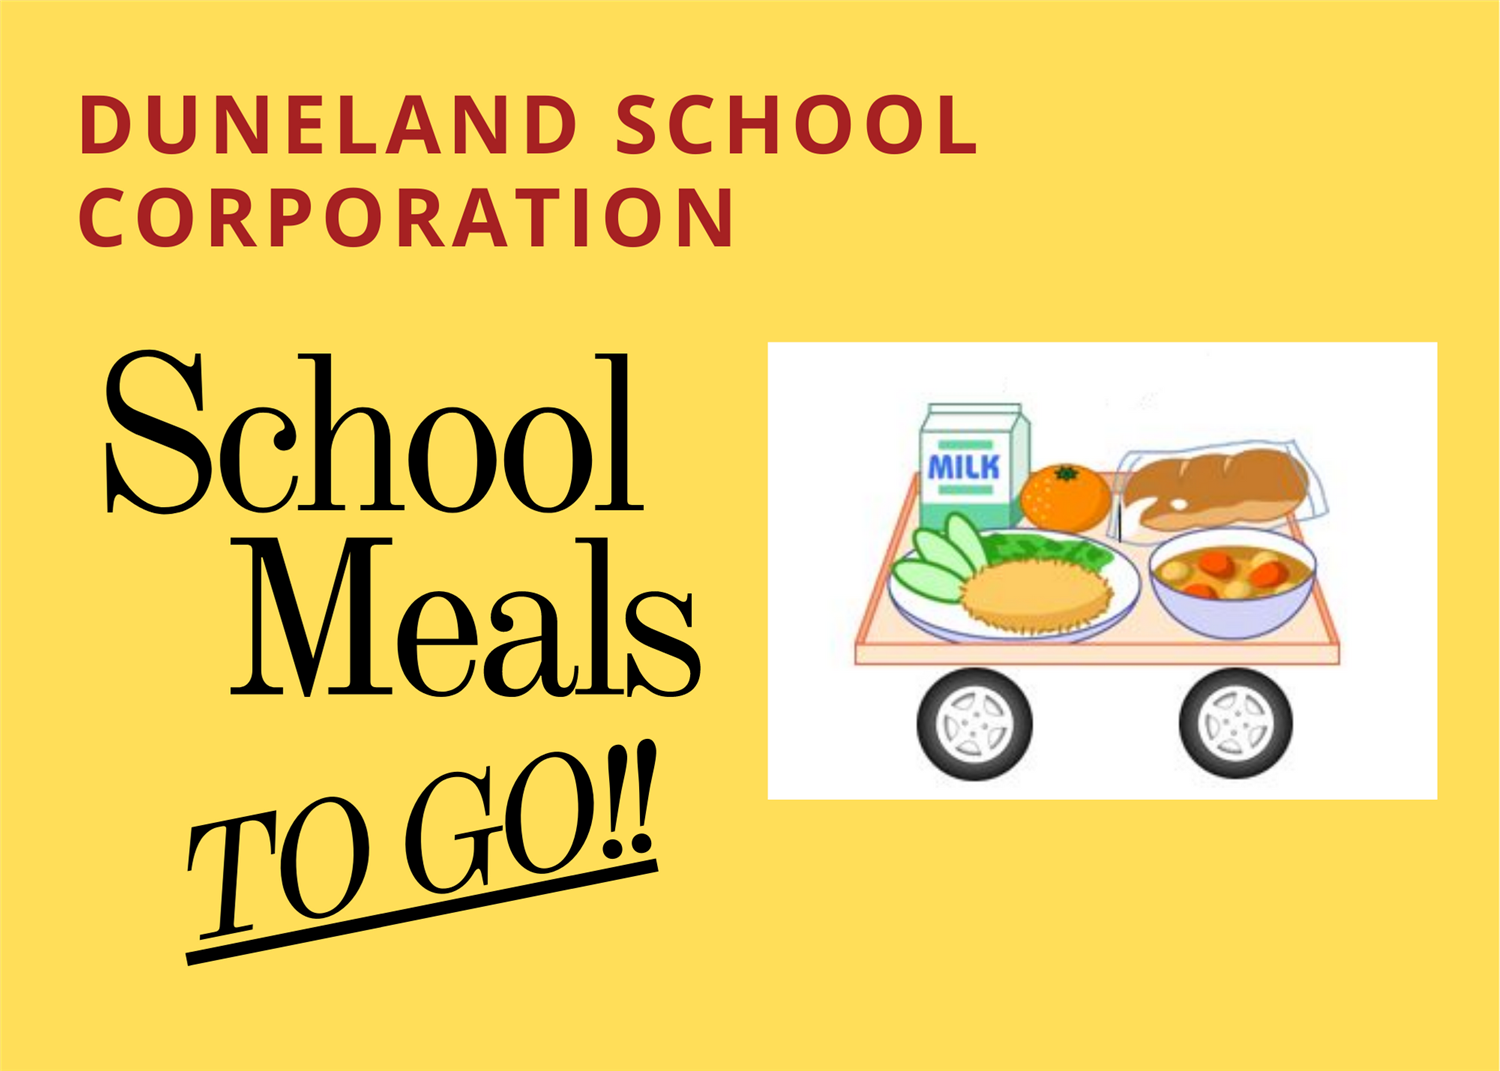 School Meals TO GO!